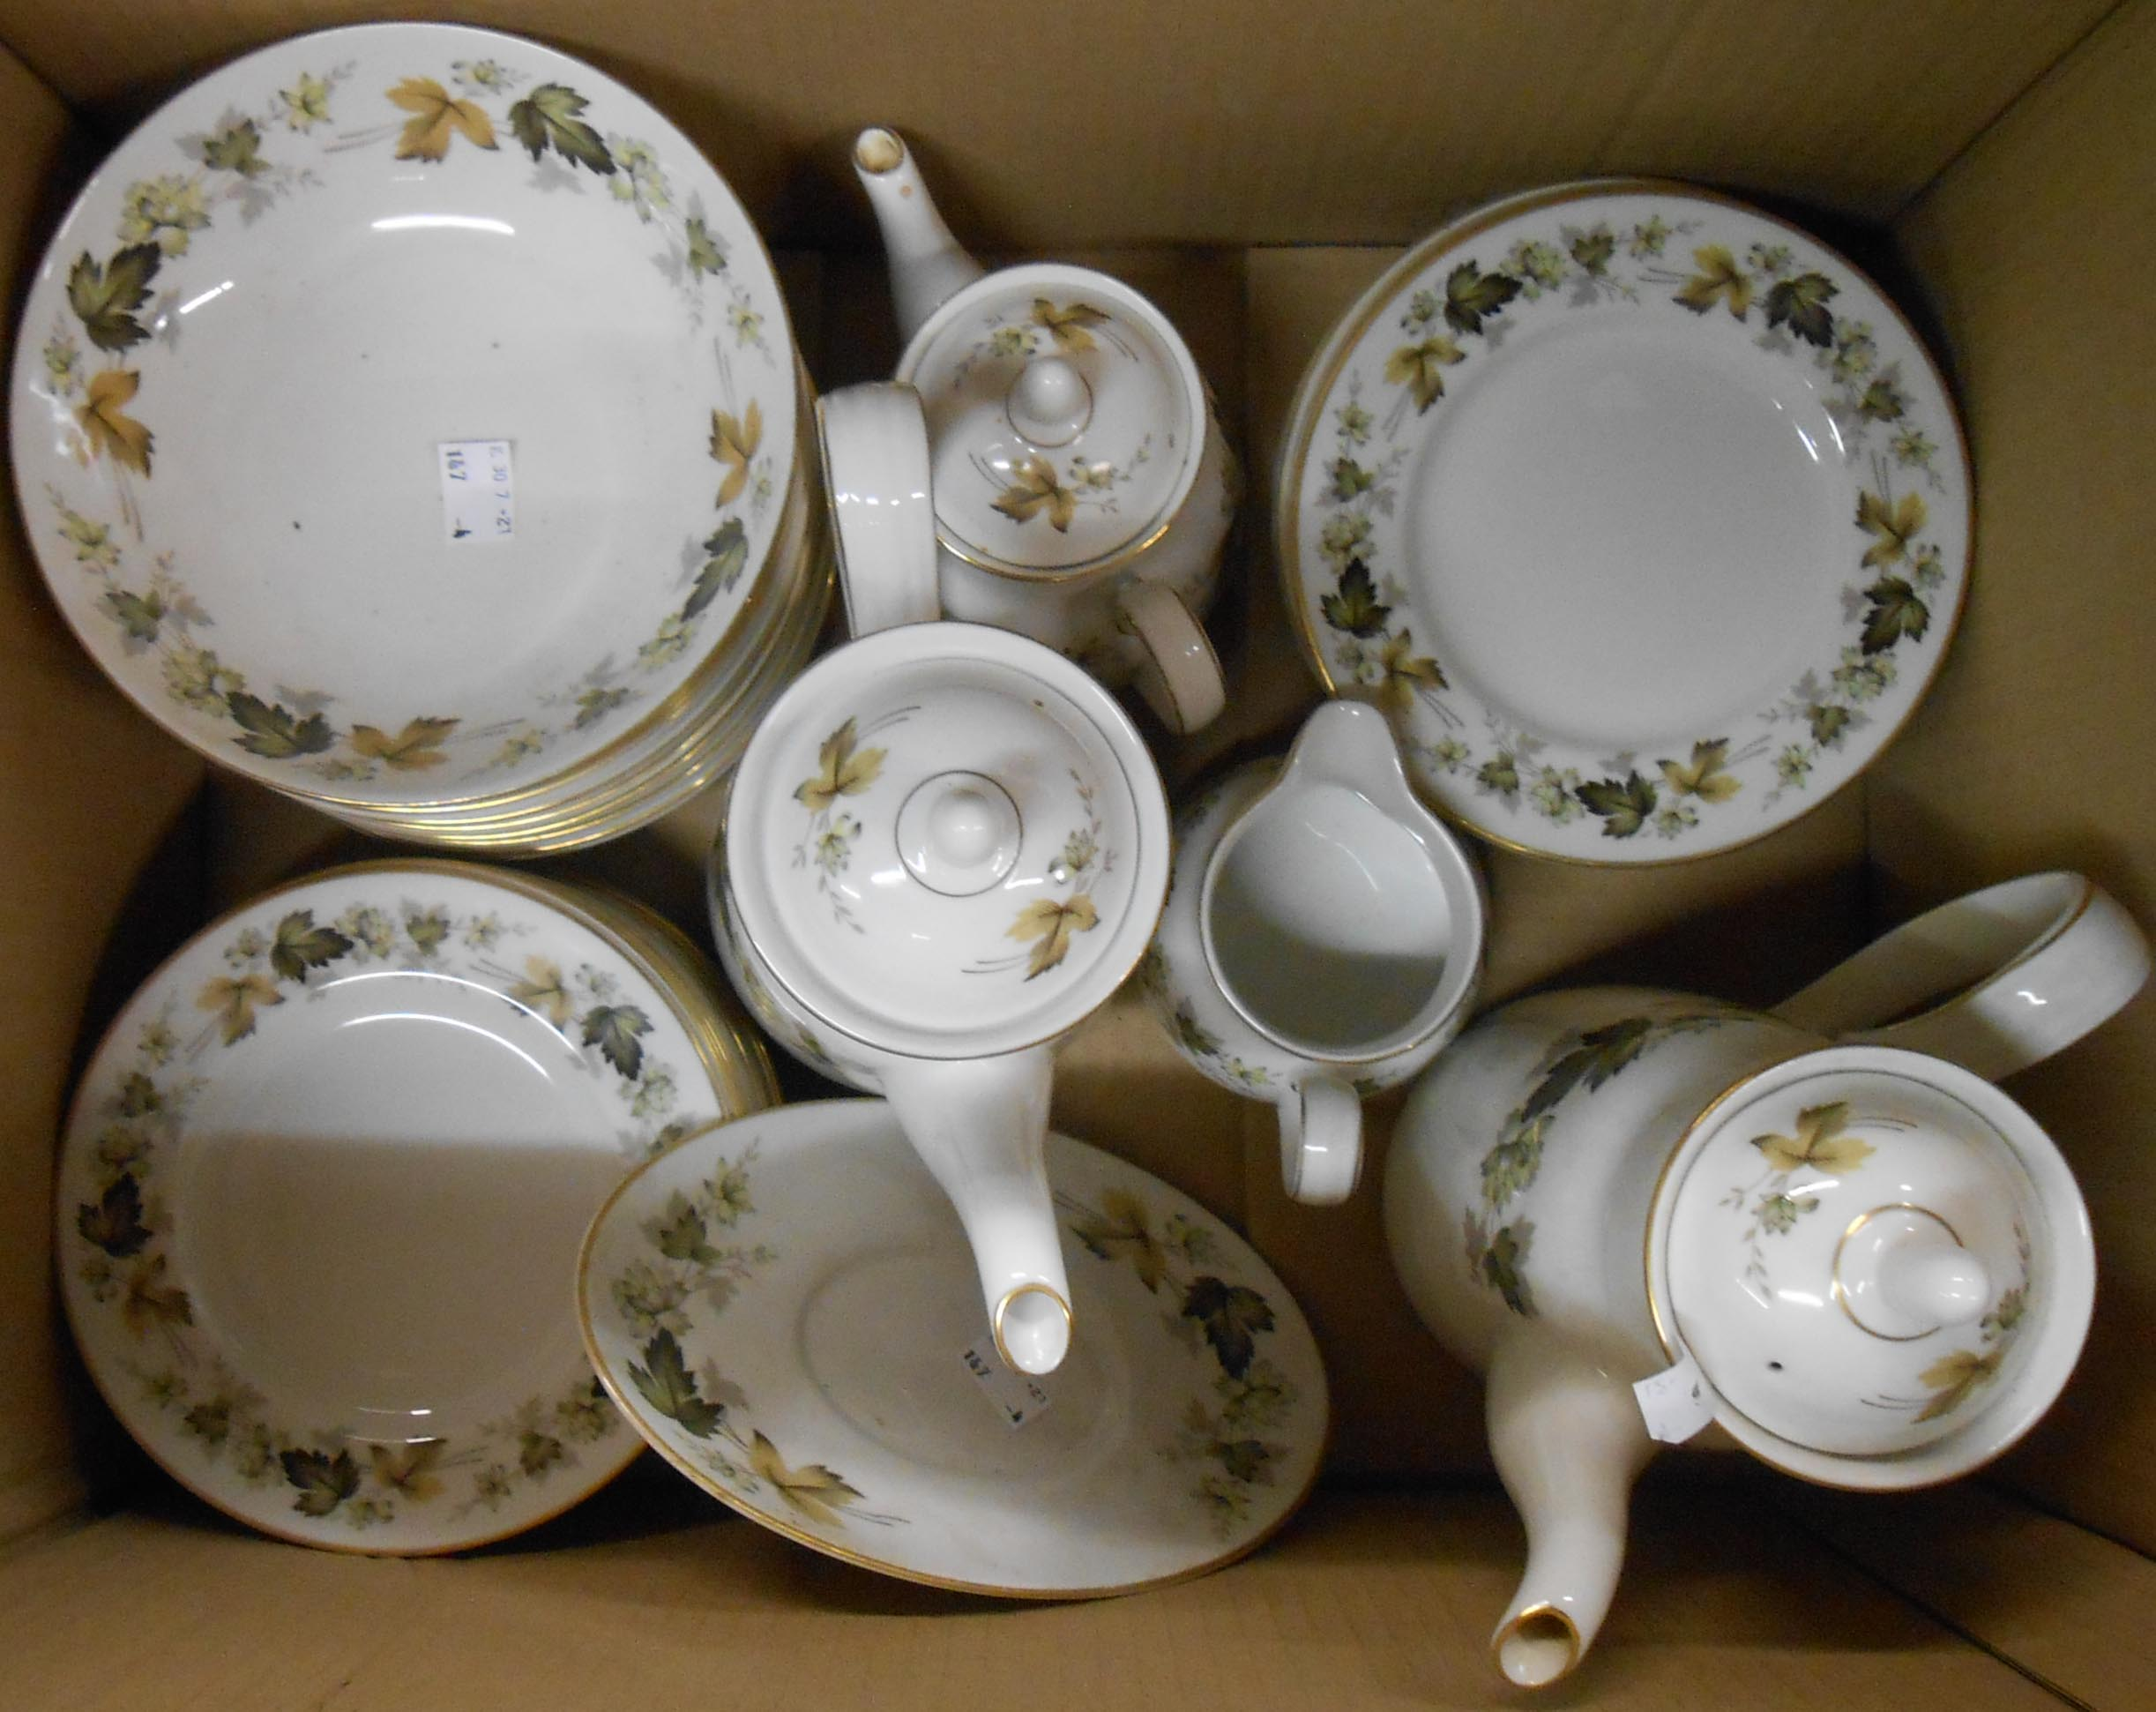 A box containing a quantity of Royal Doulton Larchmont teaware including coffee pot, cereal bowls,